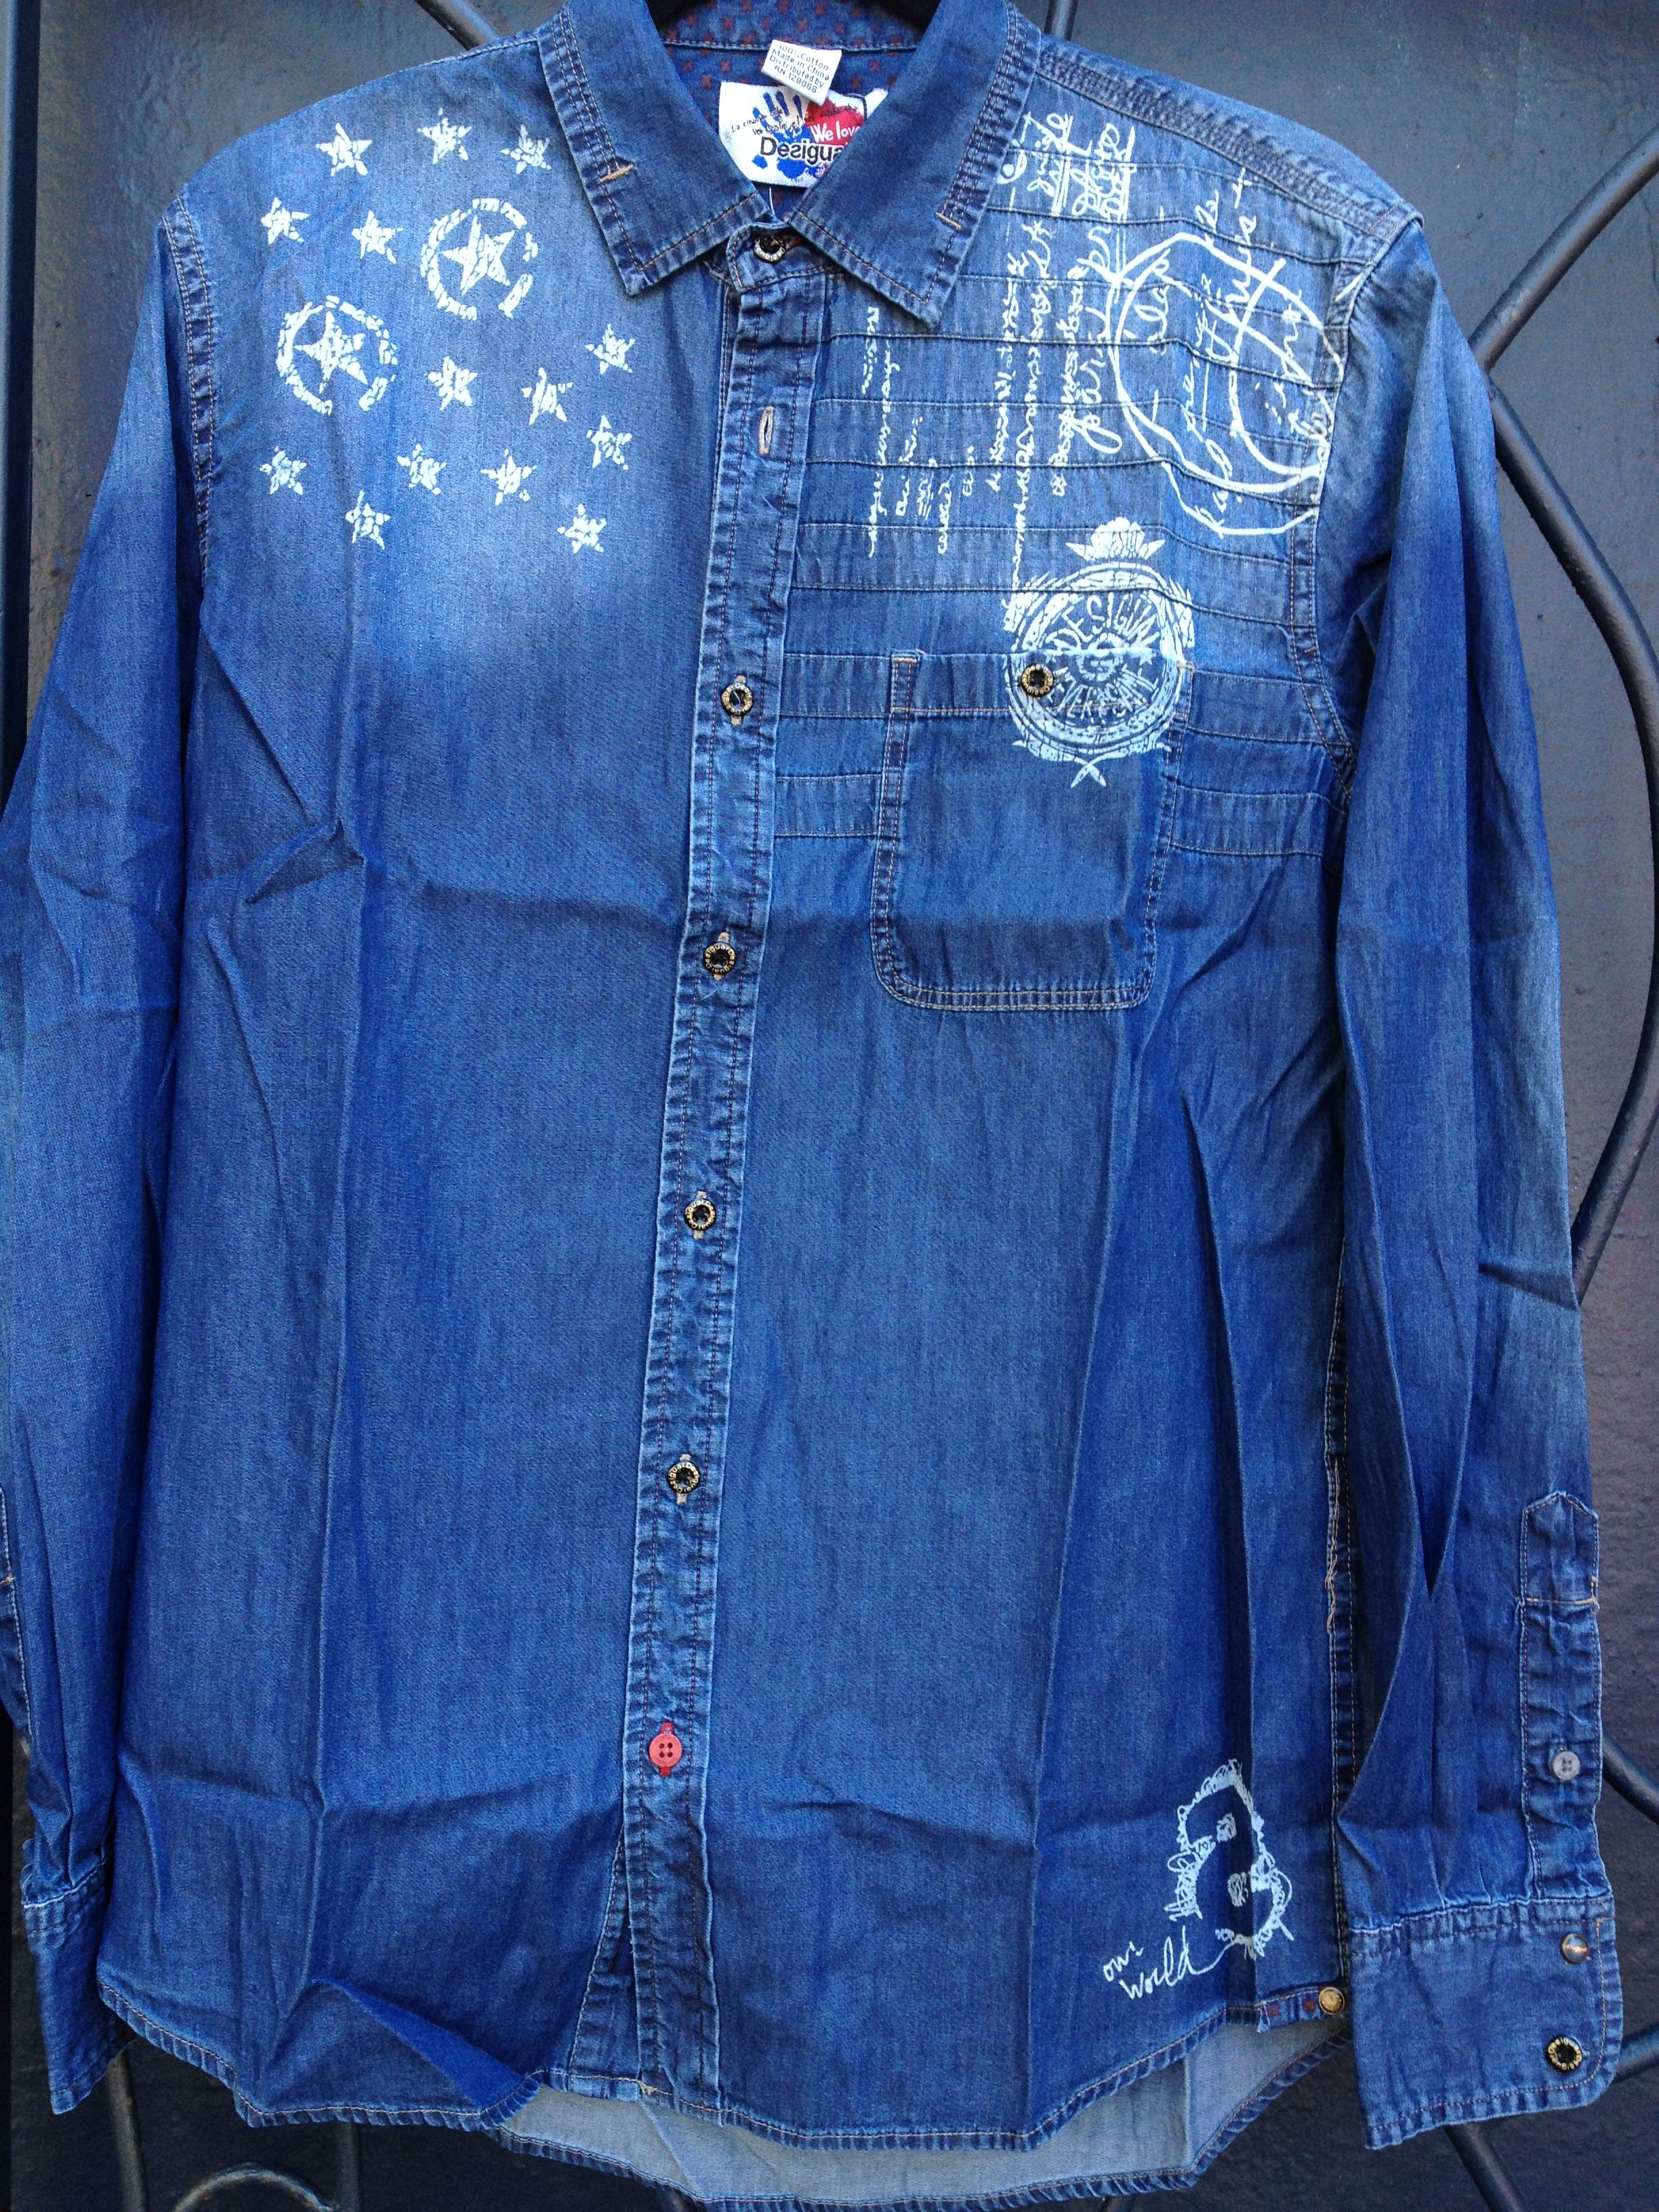 New desigual for men for 2013 fall winter angelvancouver for Mens shirt with stars